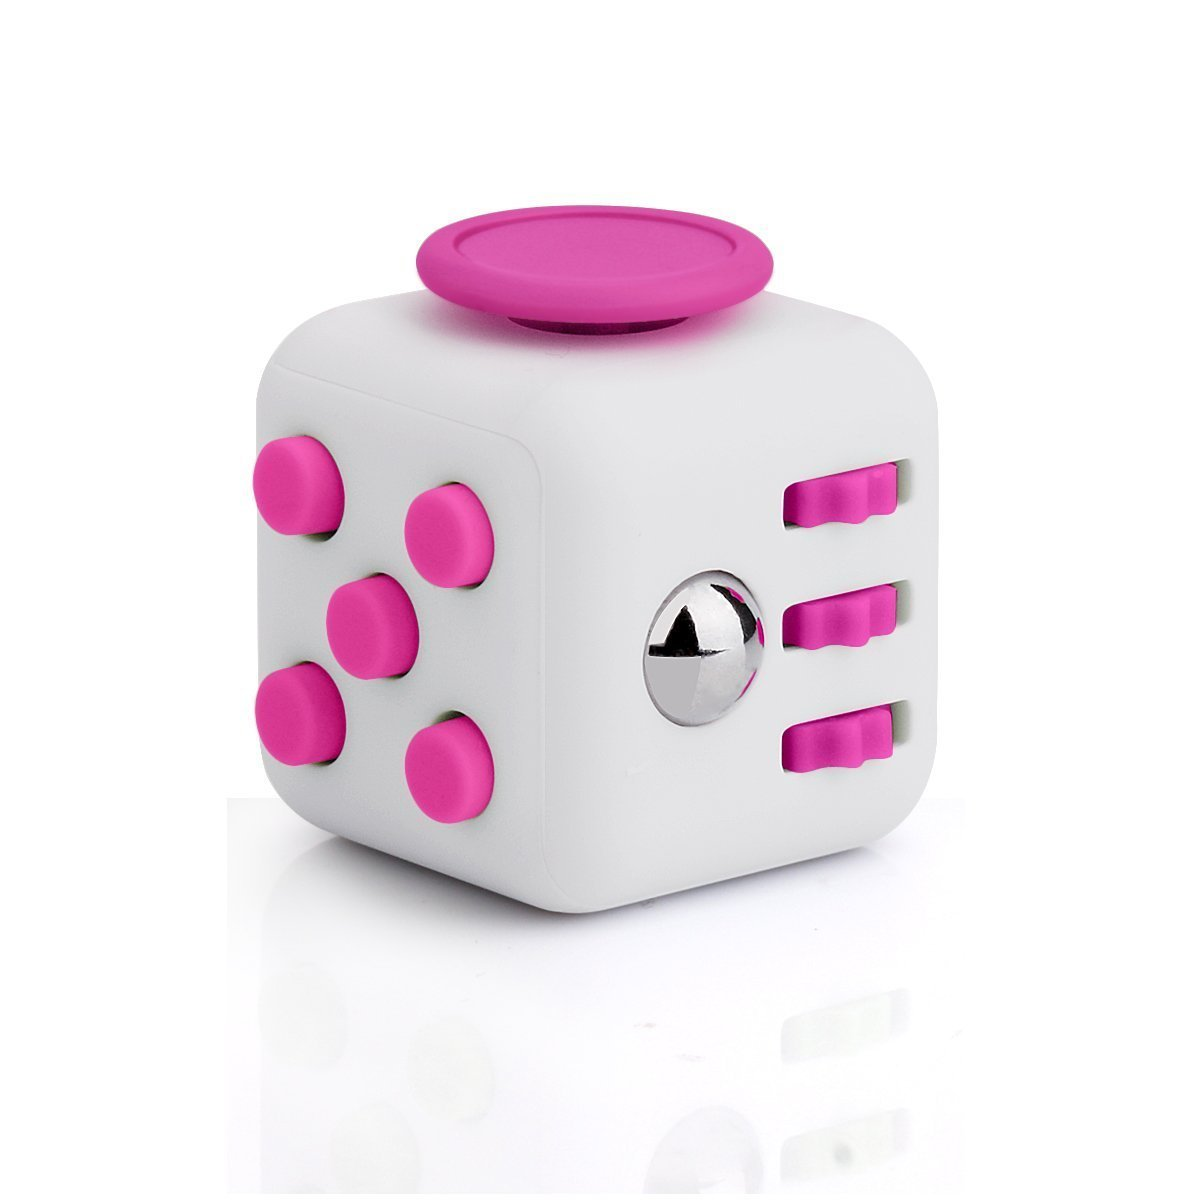 Fidget Cube Fun Stress Relief Anxiety 6 Side Dice Gift Toy